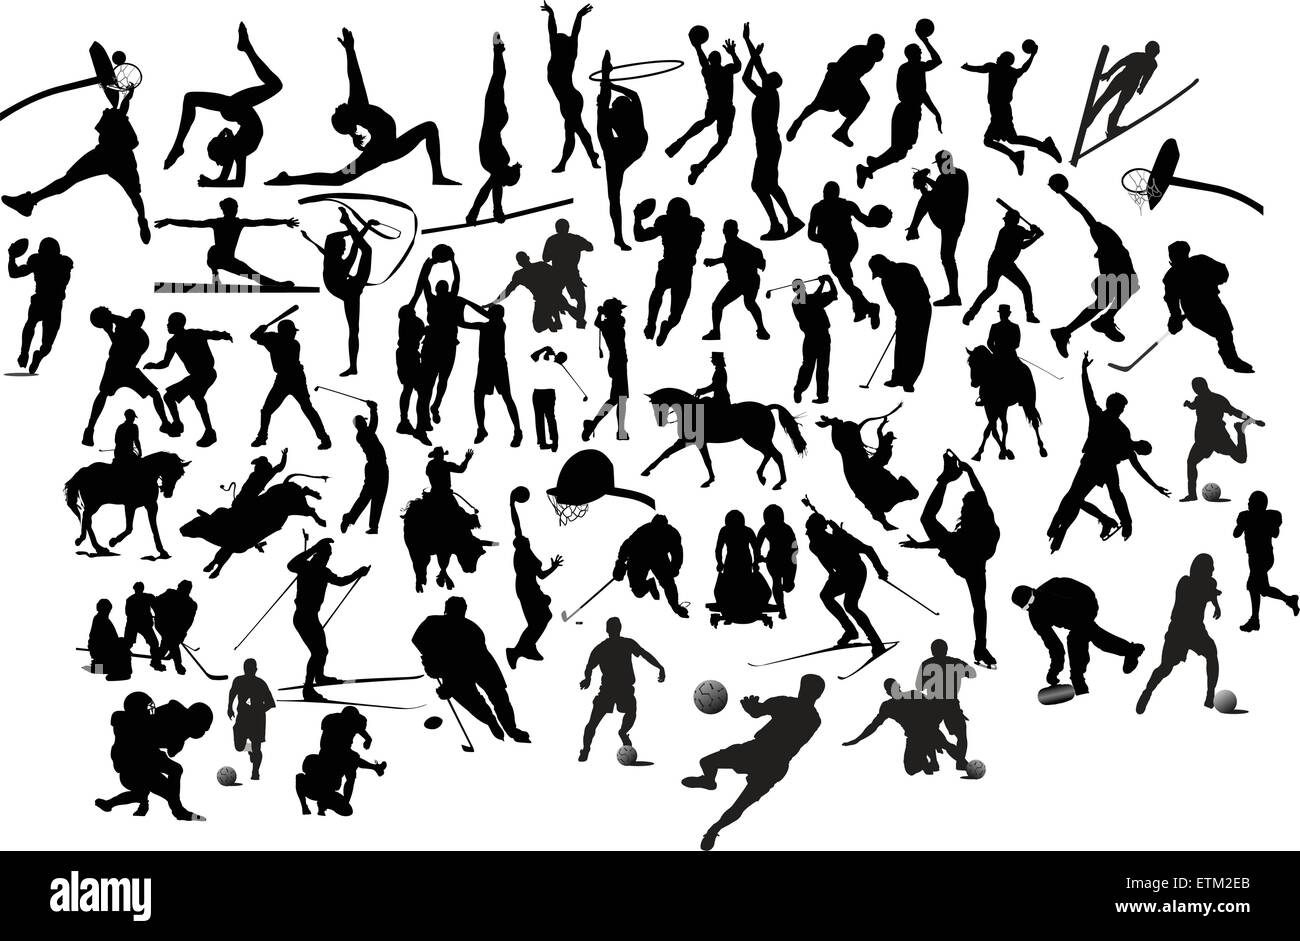 Collection of black and white sport silhouettes. Vector illustration - Stock Image